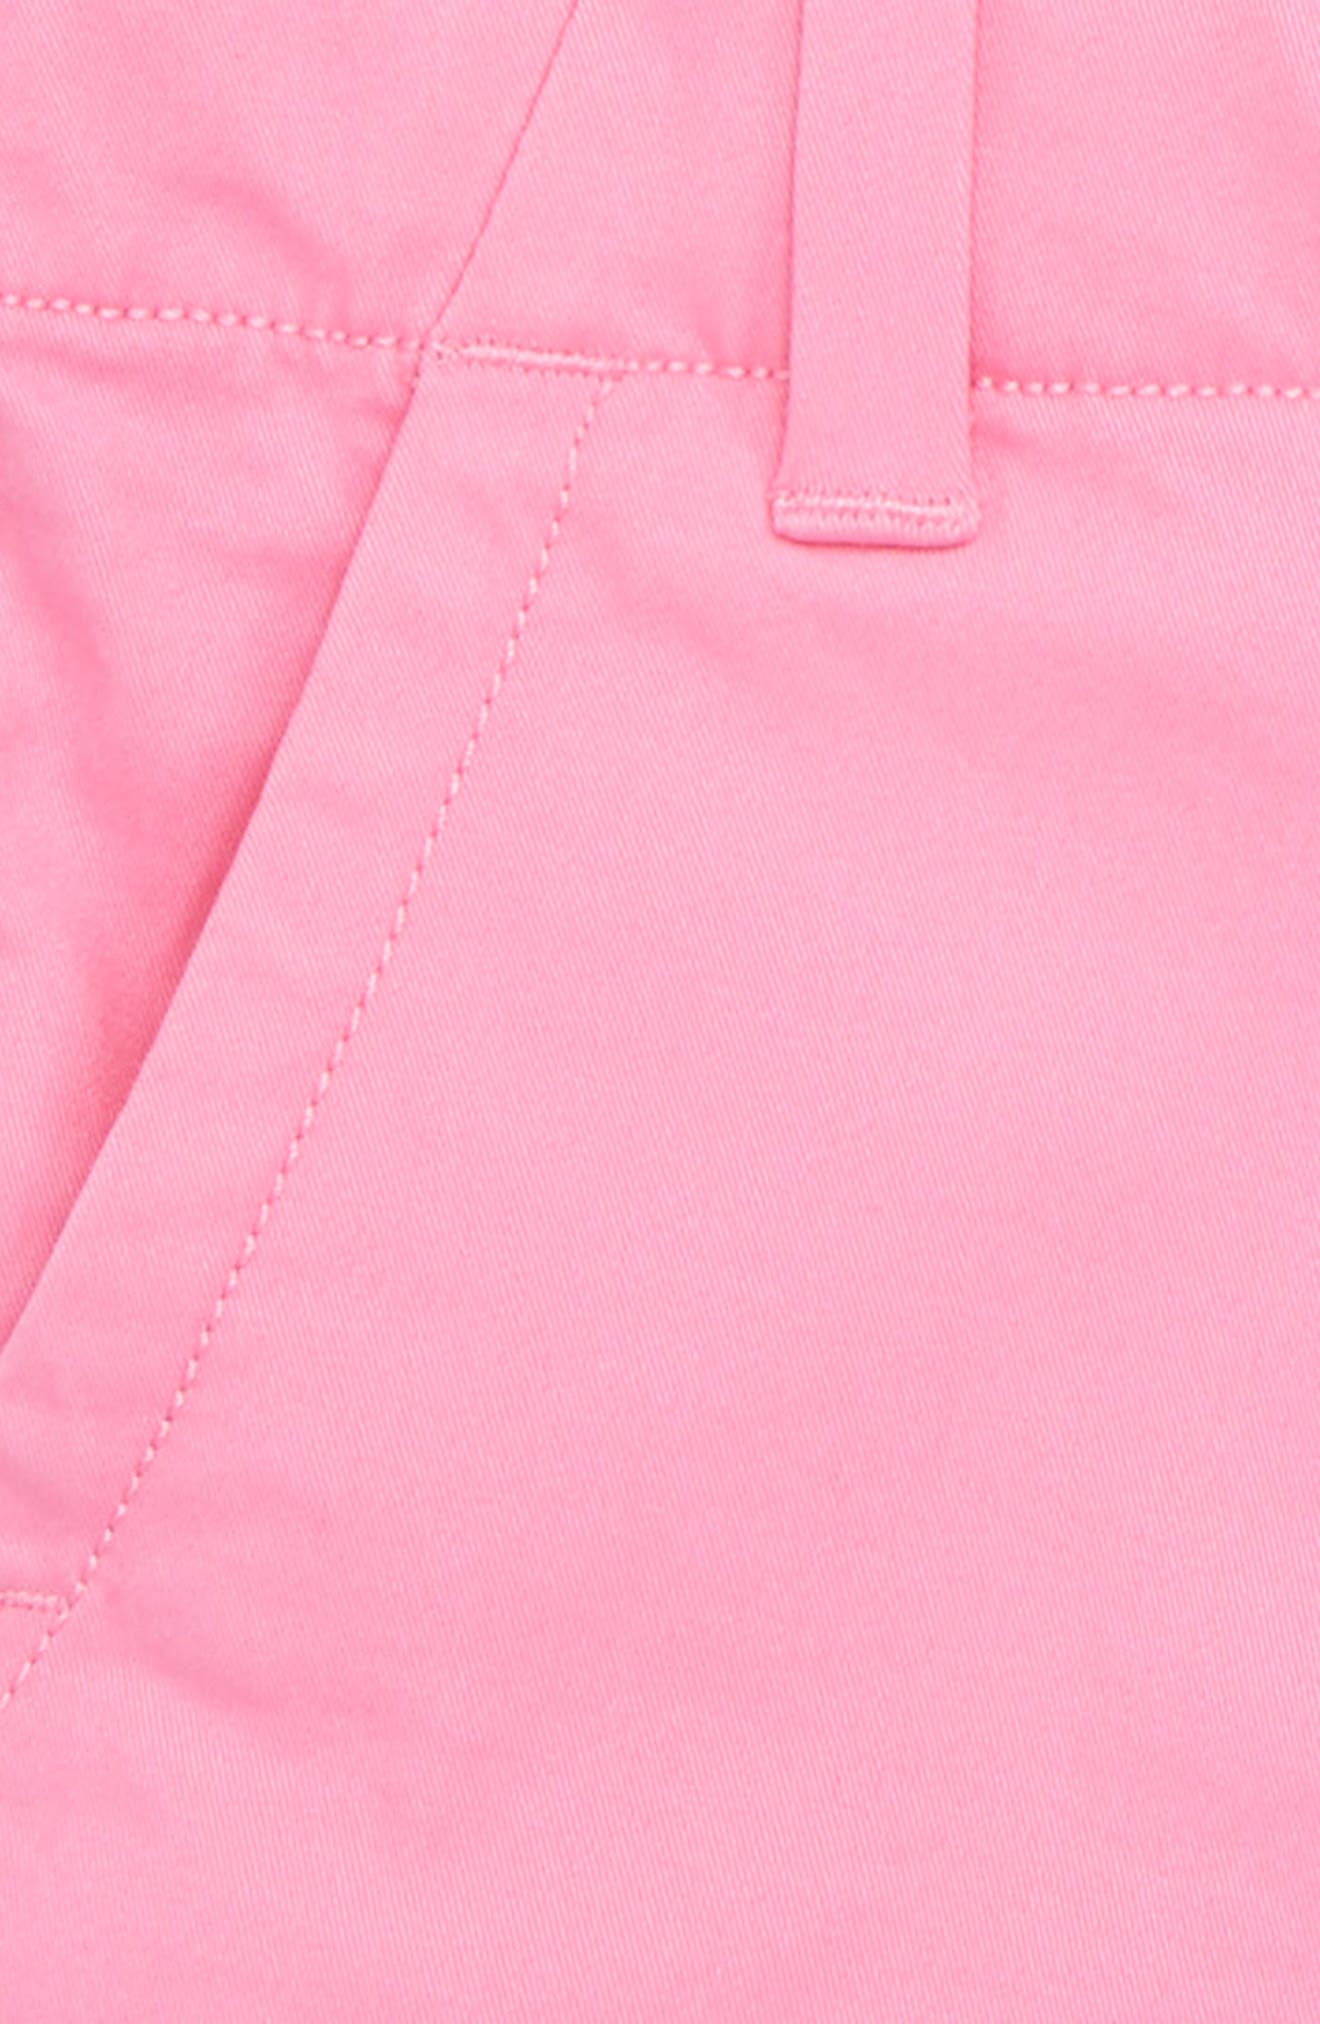 Everyday Shorts,                             Alternate thumbnail 2, color,                             650